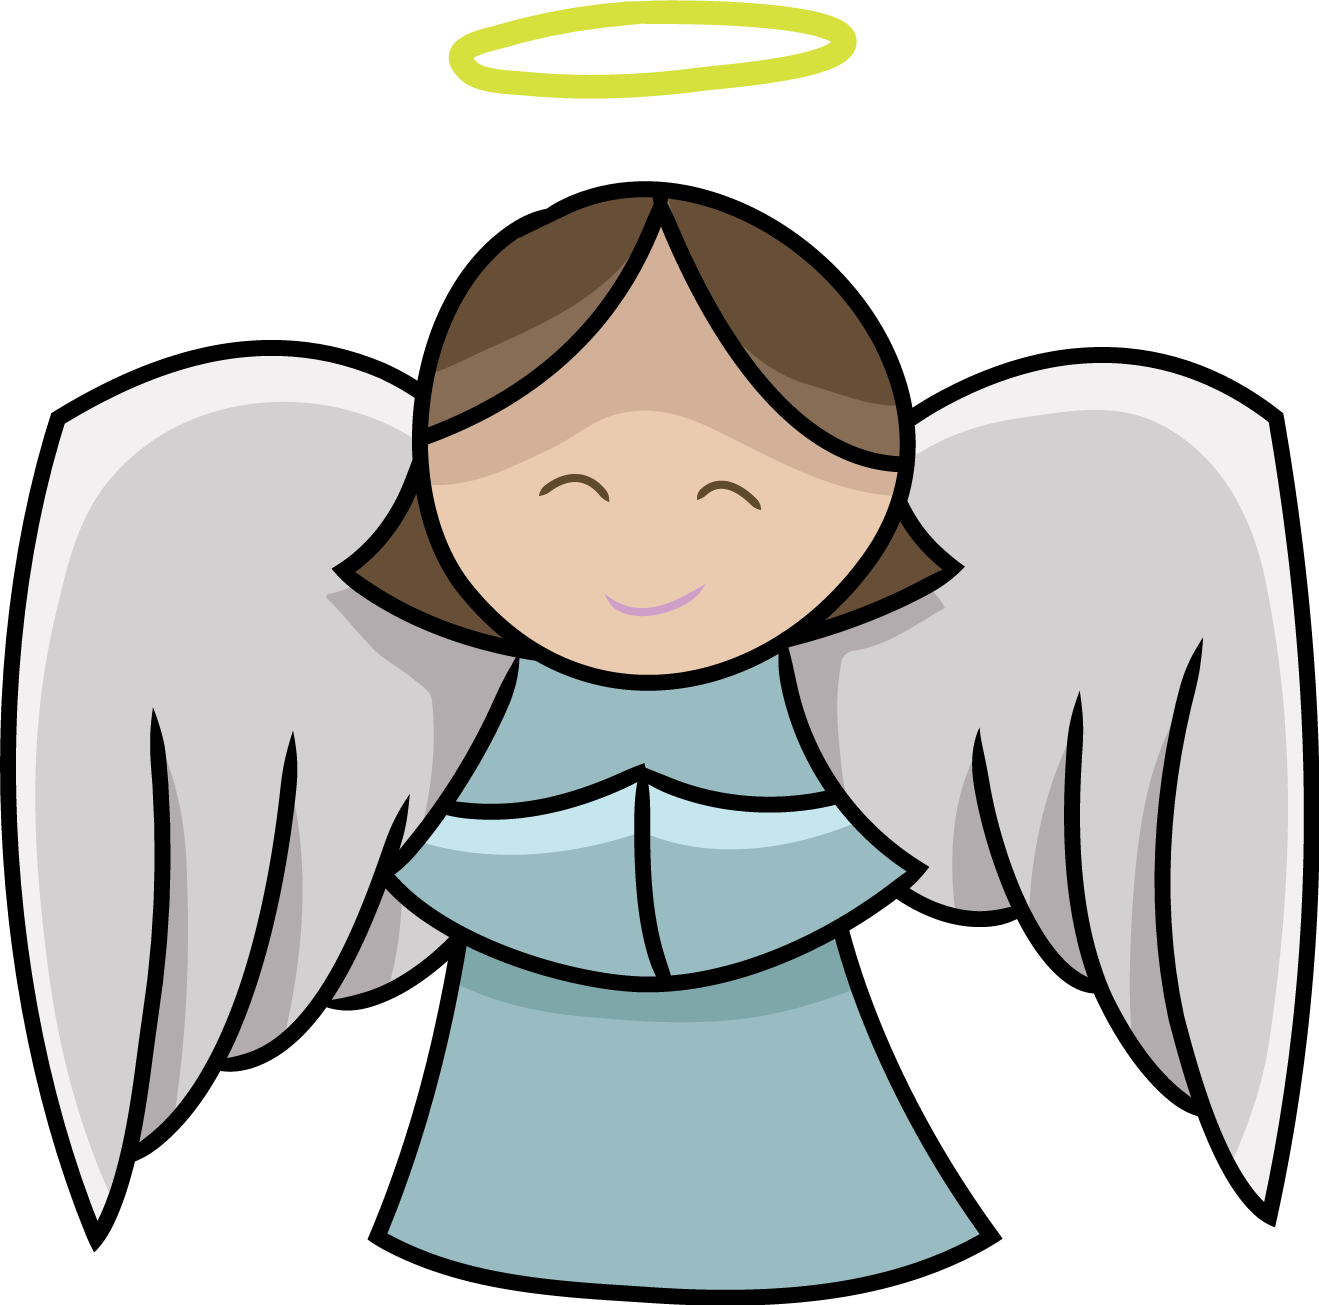 Angel images clipart picture Clipart Angel & Look At Clip Art Images - ClipartLook picture